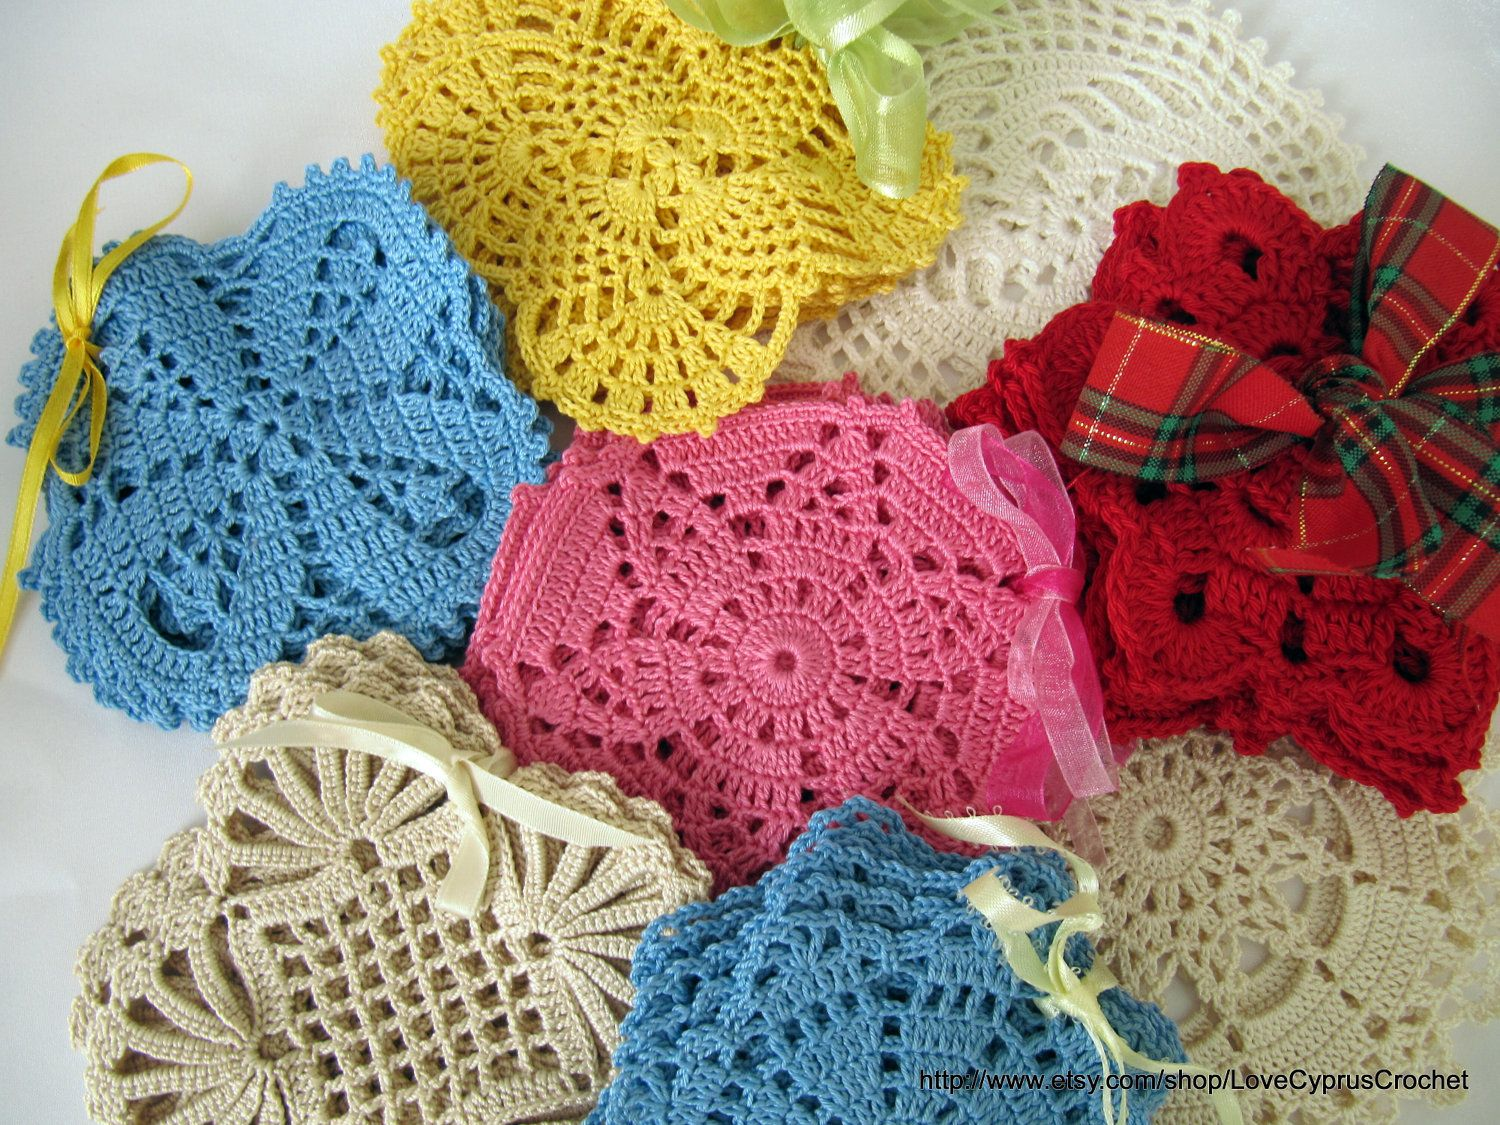 Pdf crochet coasters pattern number 4 pdf file crochet patterns pdf crochet coasters pattern number 4 pdf file crochet patterns diagrams coasters 8 bankloansurffo Images